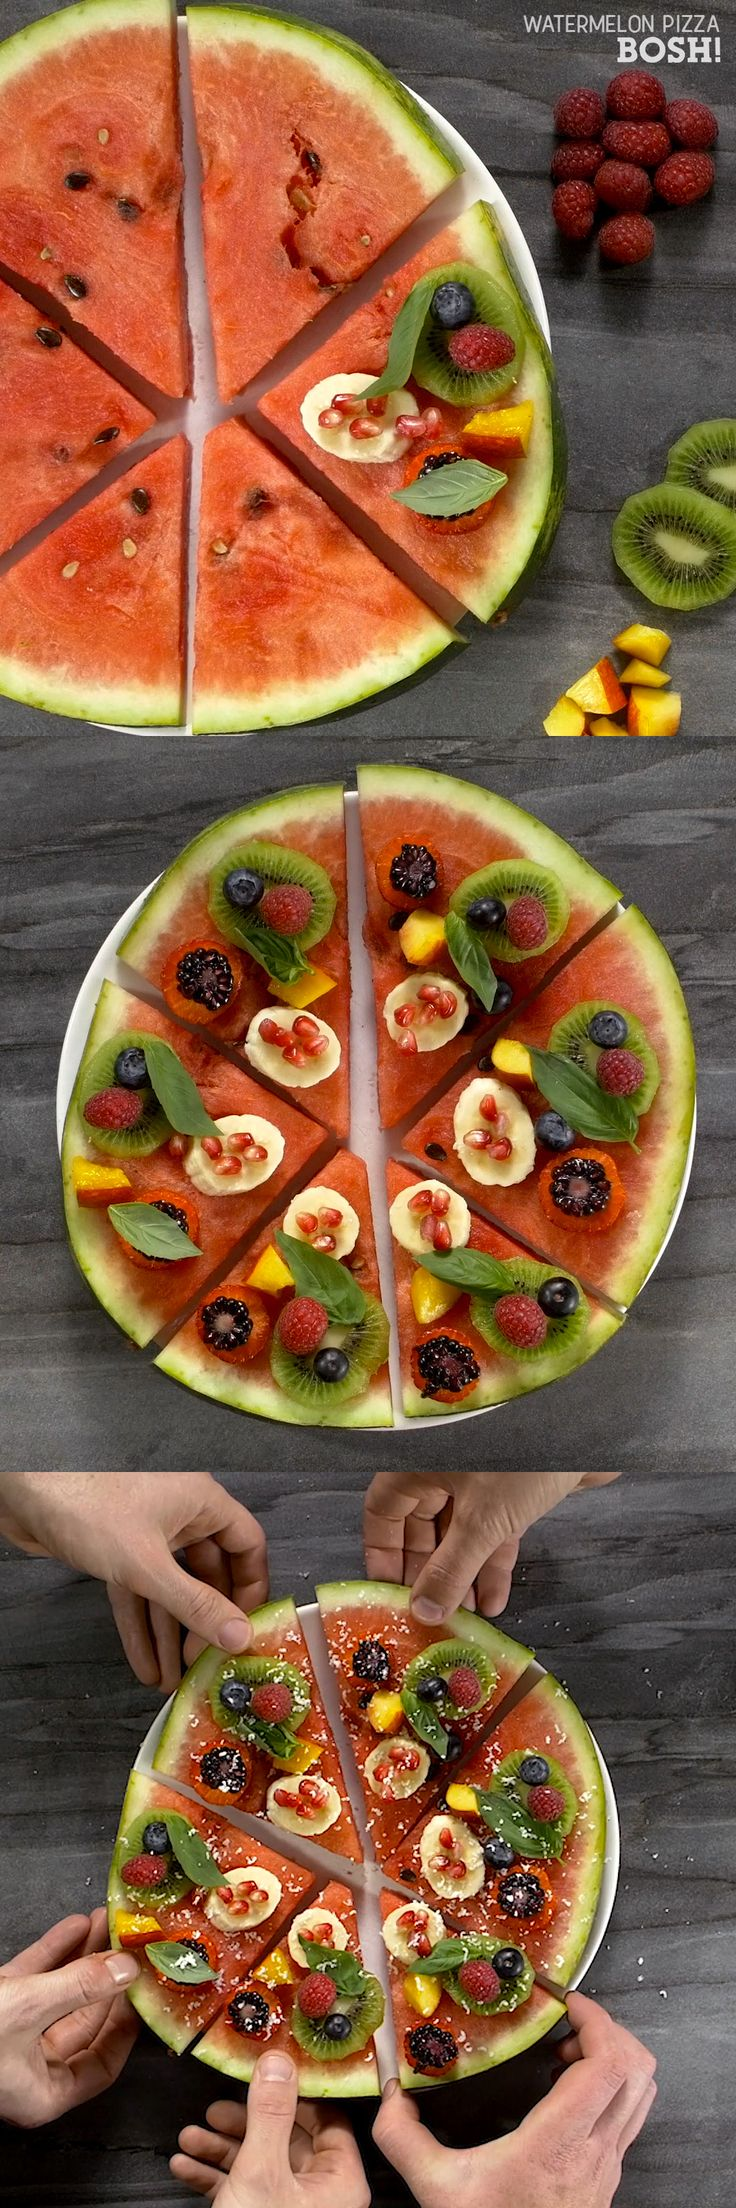 WATERMELON PIZZA  WHAT YOU'LL NEED: Large Watermelon Handful of Blueberries 2 Kiwis Handful Pomegranate Seeds Small Bunch of Basil Grated Coconut 1 Banana Handful Raspberries Handful Strawberries HOW YOU MAKE IT: Take a sharp knife & carefully cut a 1 inch thick slice out of the widest part of the Watermelon Cut the Slice into 6 equal pieces (like a pizza) Cut the fruit into small pieces Arrange the fruit as beautifully as you canGrate creamed coconut on top of the pizza Garnish with Basil